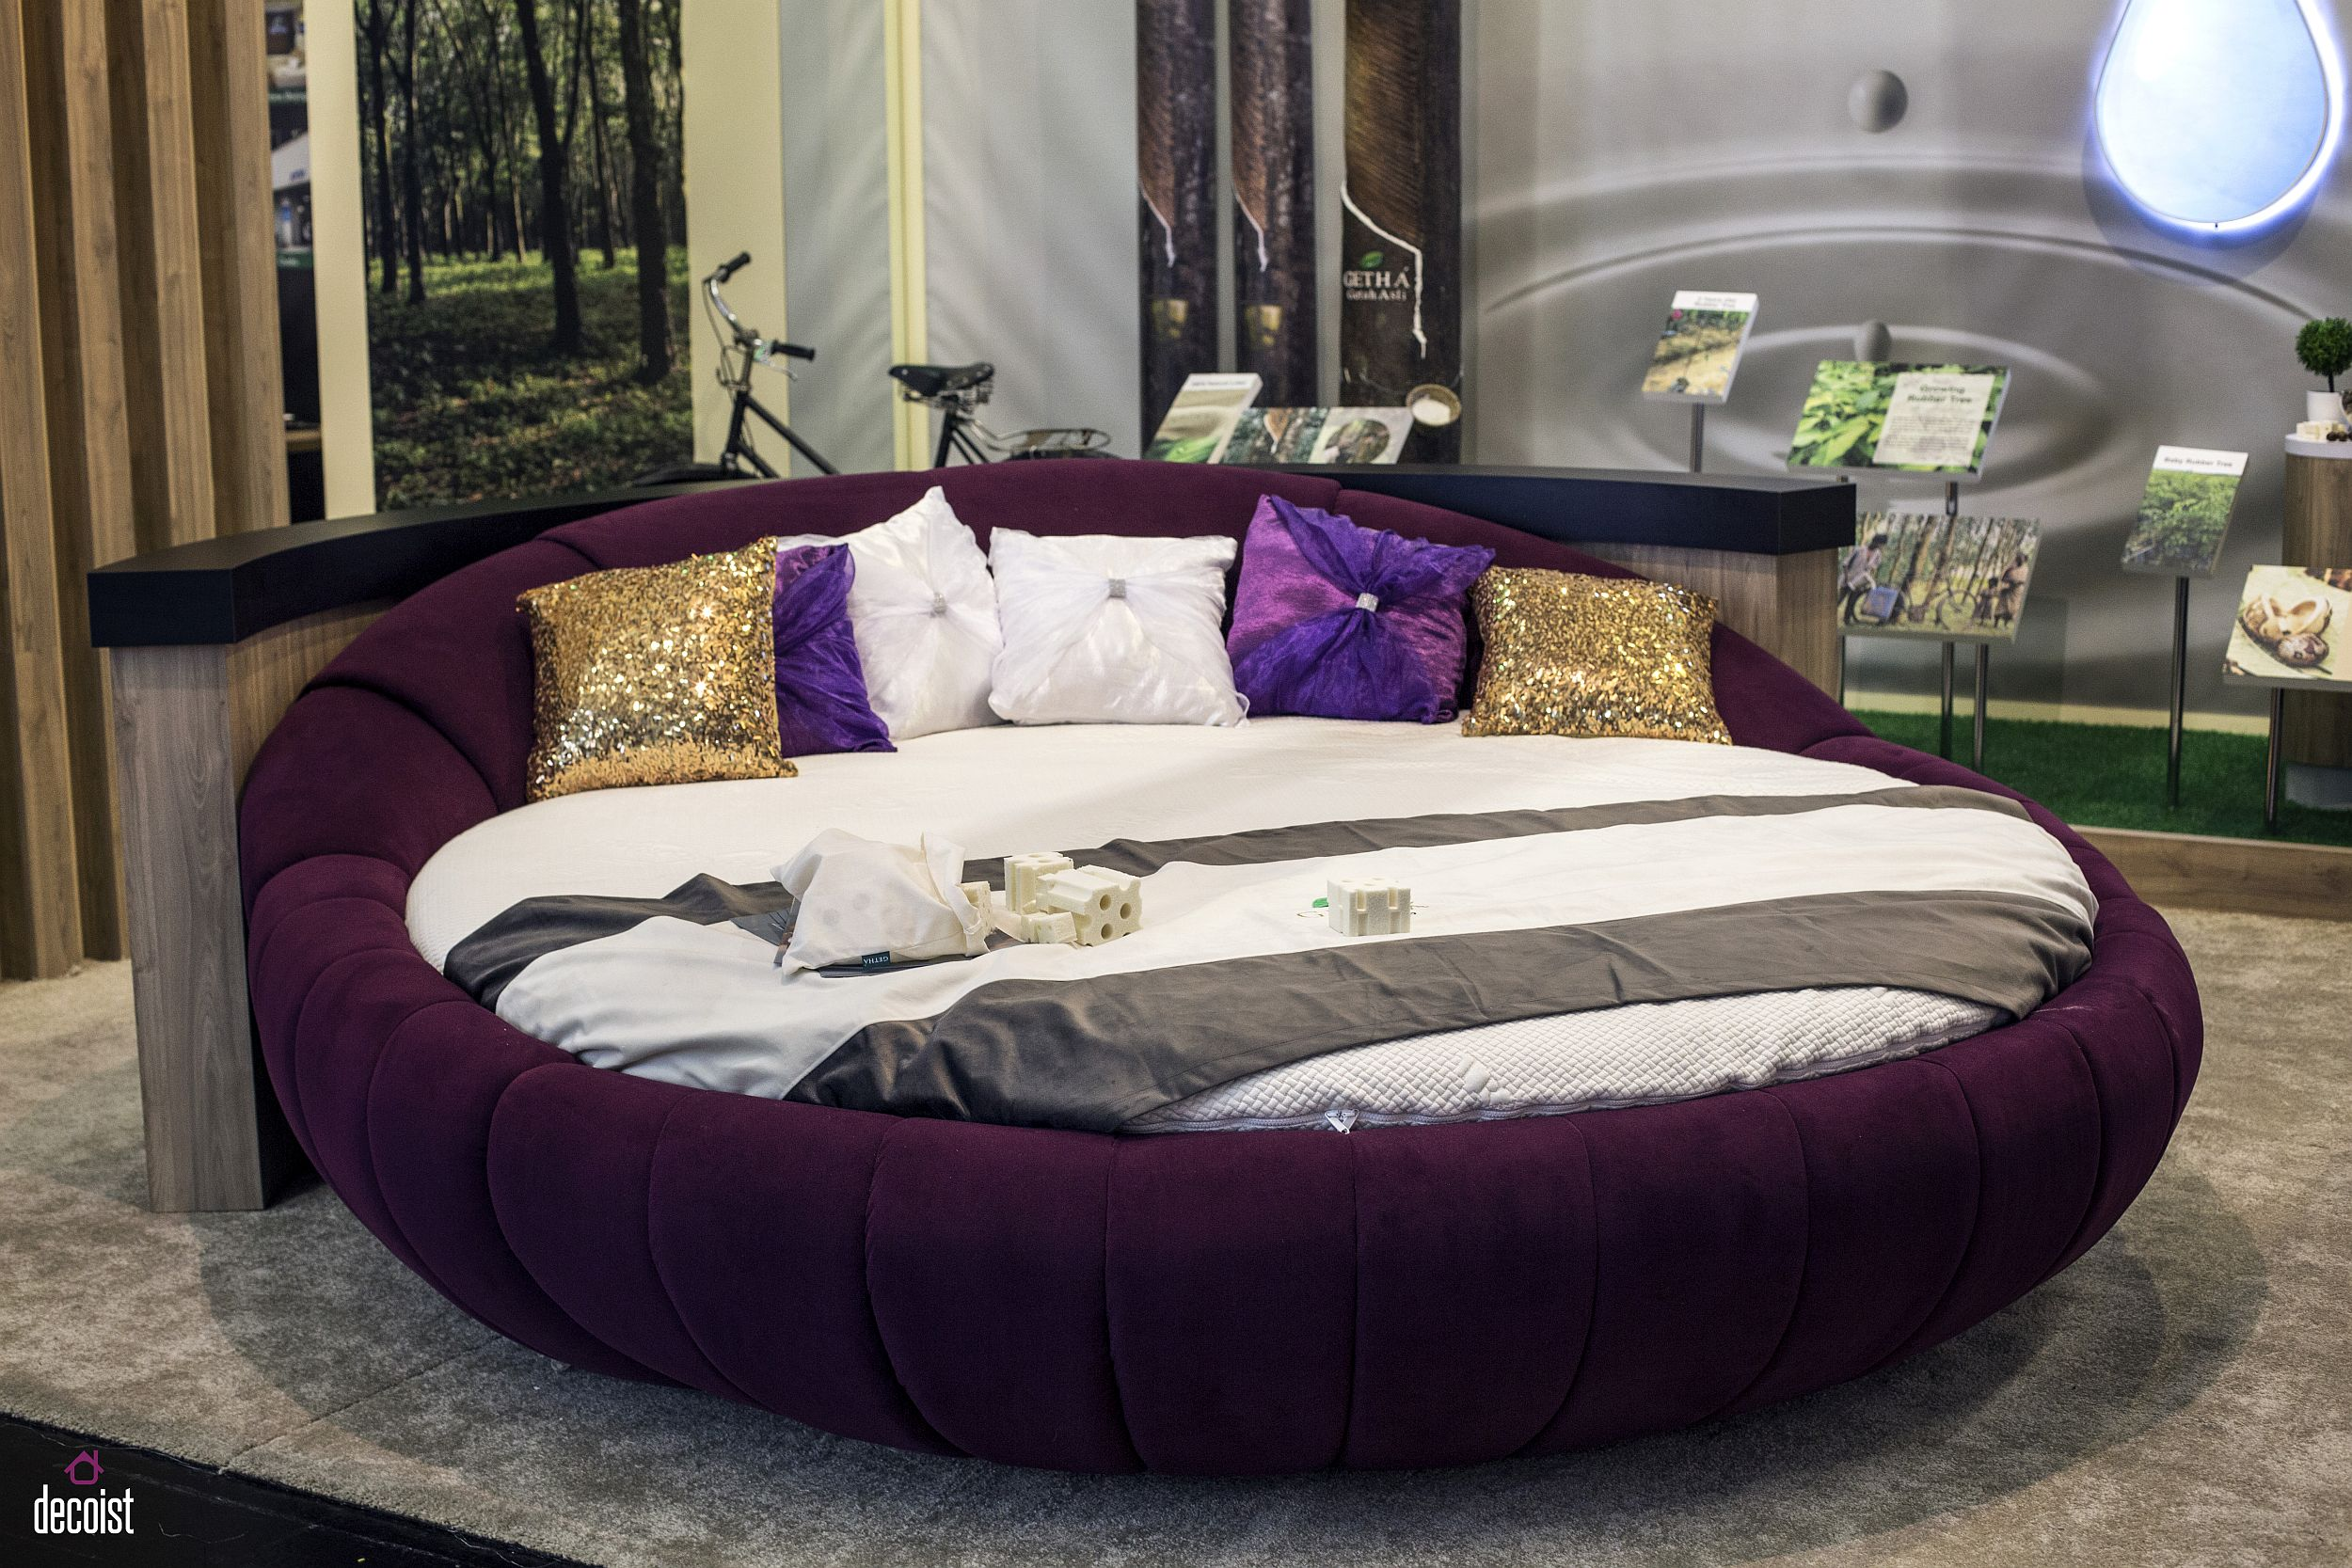 Round-daybed-in-bright-purple-for-those-who-wnat-to-move-away-from-the-mundane